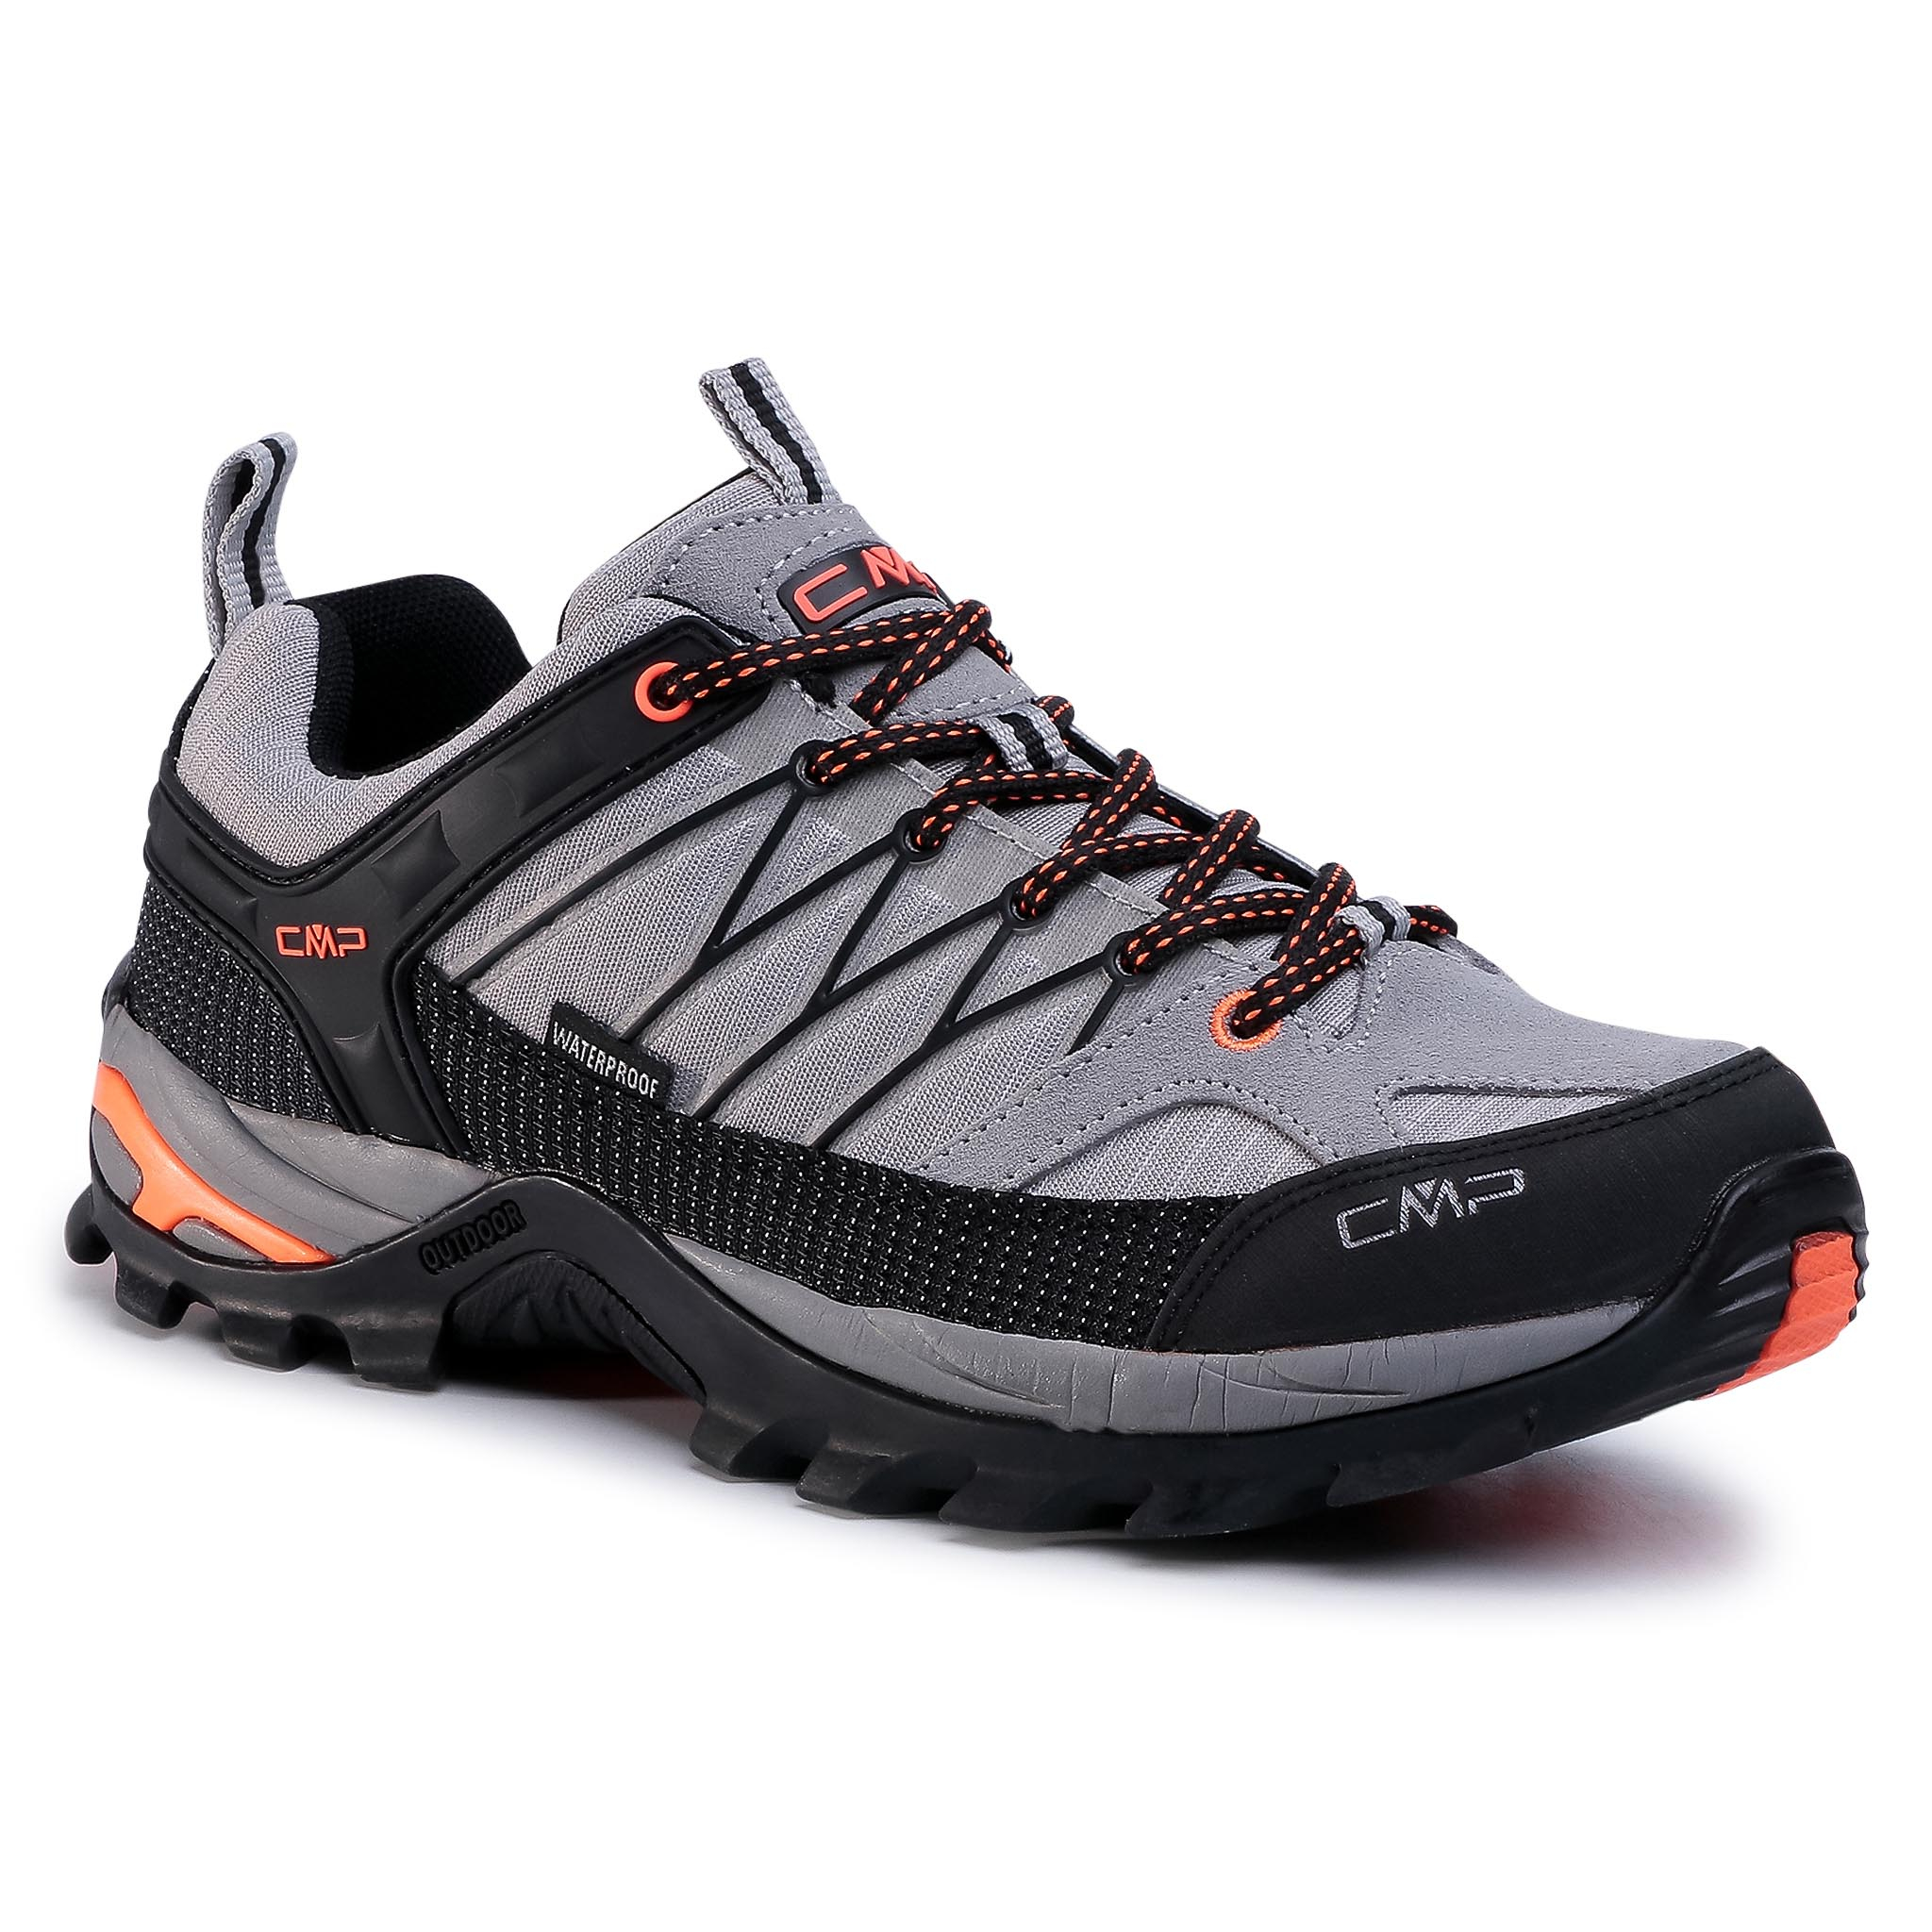 Trekkings Cmp - Rigel Low Trekking Shoes Wp 3q54457 Cemento/Nero 75ue imagine epantofi.ro 2021